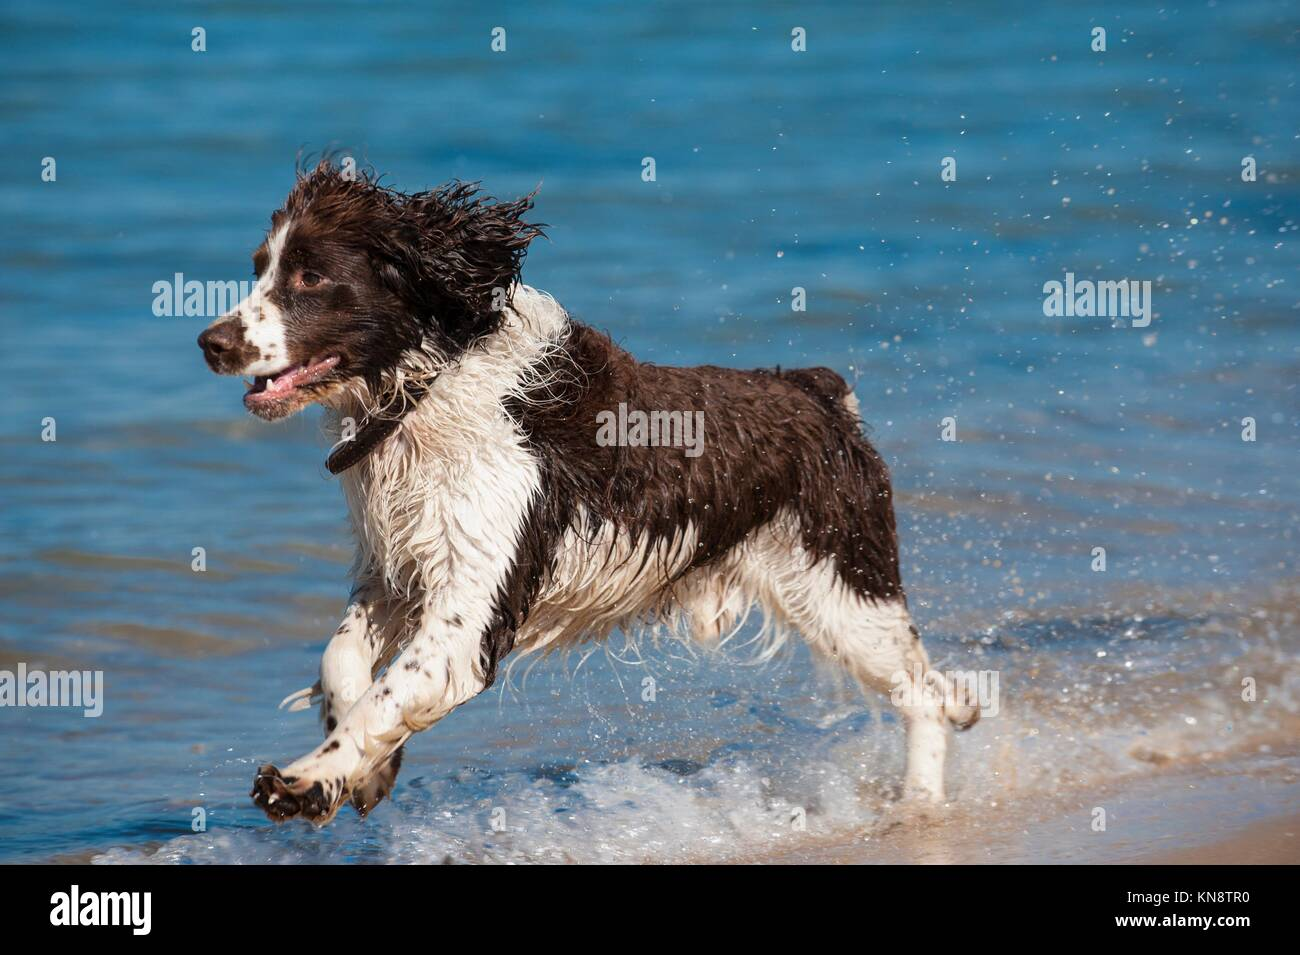 Focused young dog running on the beach, Aquitaine, France. - Stock Image